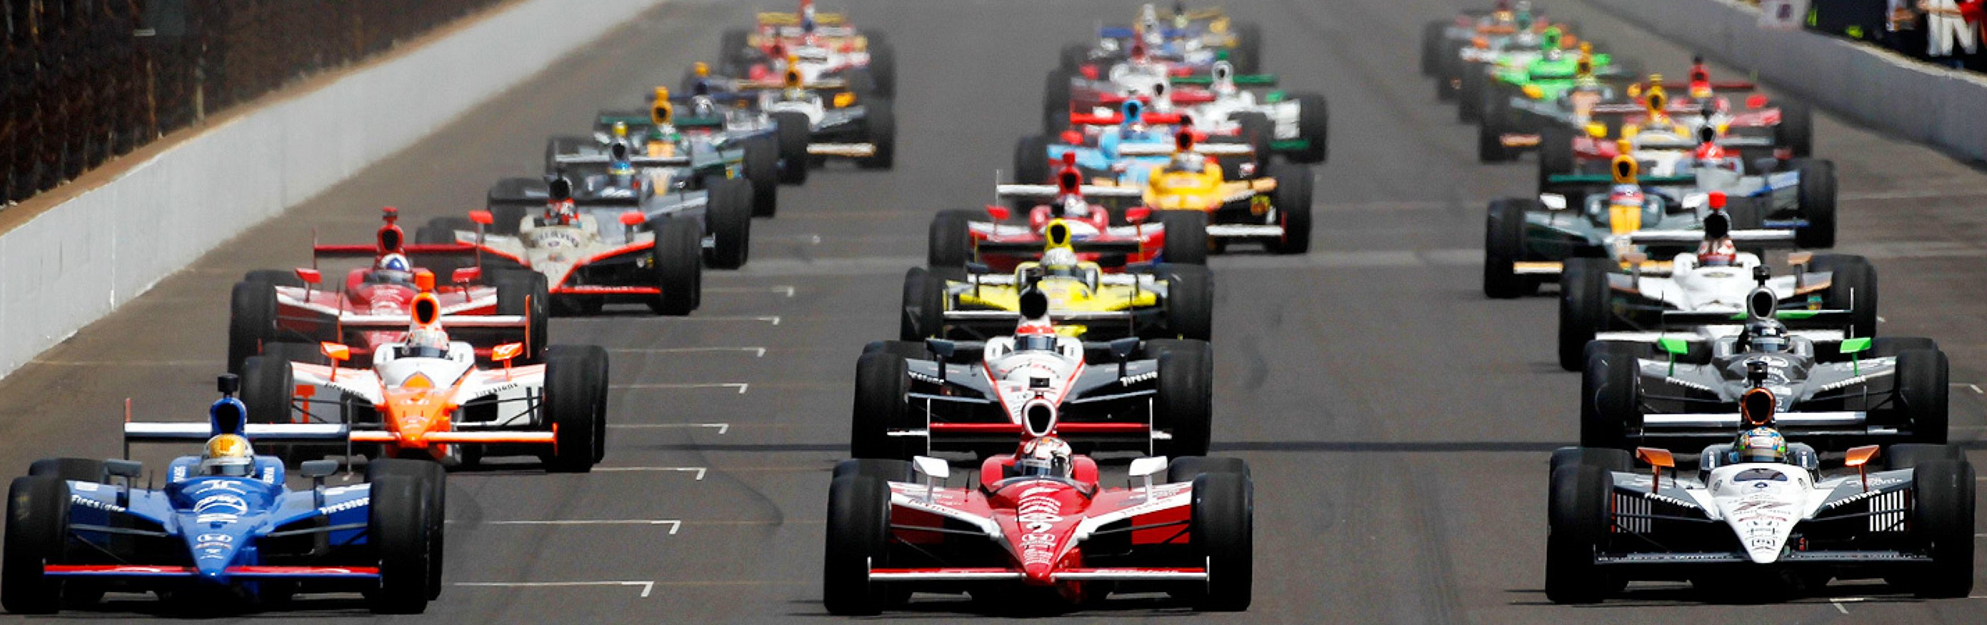 "In an attempt to prevent cars from getting airborne as a result of spins, IndyCar has changed the aero package for the Indy 500. This is in direct response to three vehicles taking flight during last year's practice for the running of ""The Greatest Spectacle in Racing"". Honda has attempted to argue that the use of a 'domed skid' to increase the ride height and reduce downforce will prove to be problematic for the specific aero package that is being used by Honda race teams. Honda has requested to use strakes on the floor of the chassis to help Honda maintain an even playing field with Chevrolet. IndyCar has denied Honda's request and has elected to move forward with the current aero requirements. Honda's continued arguing of this issue has led many to believe that the engine manufacturer is attempting to blame IndyCar for poor performance."